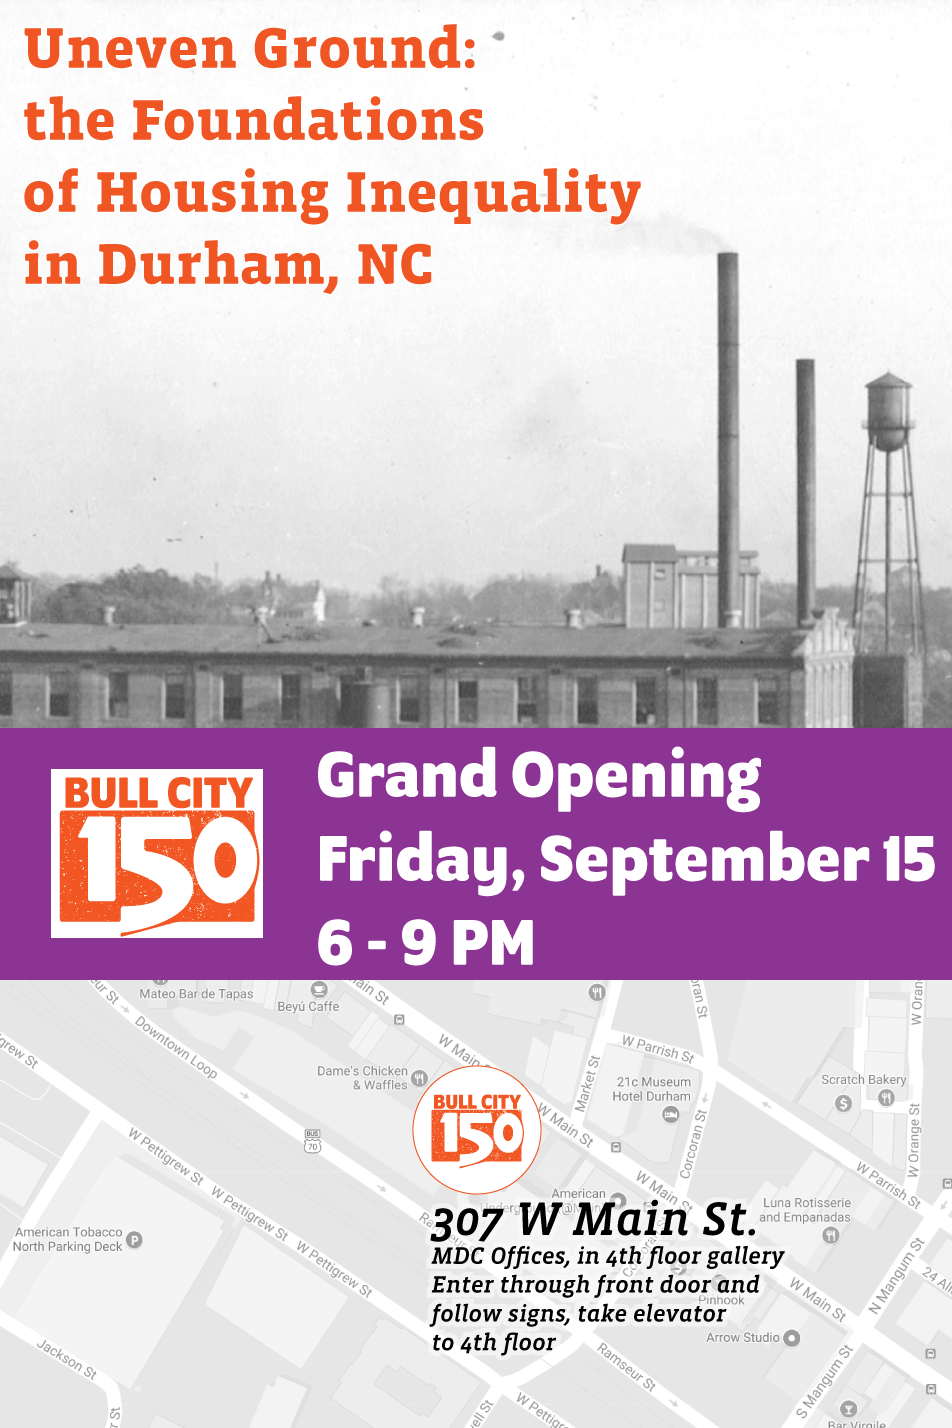 Opening Celebration for Uneven Ground: The Foundations of Housing Inequality in Durham, NC